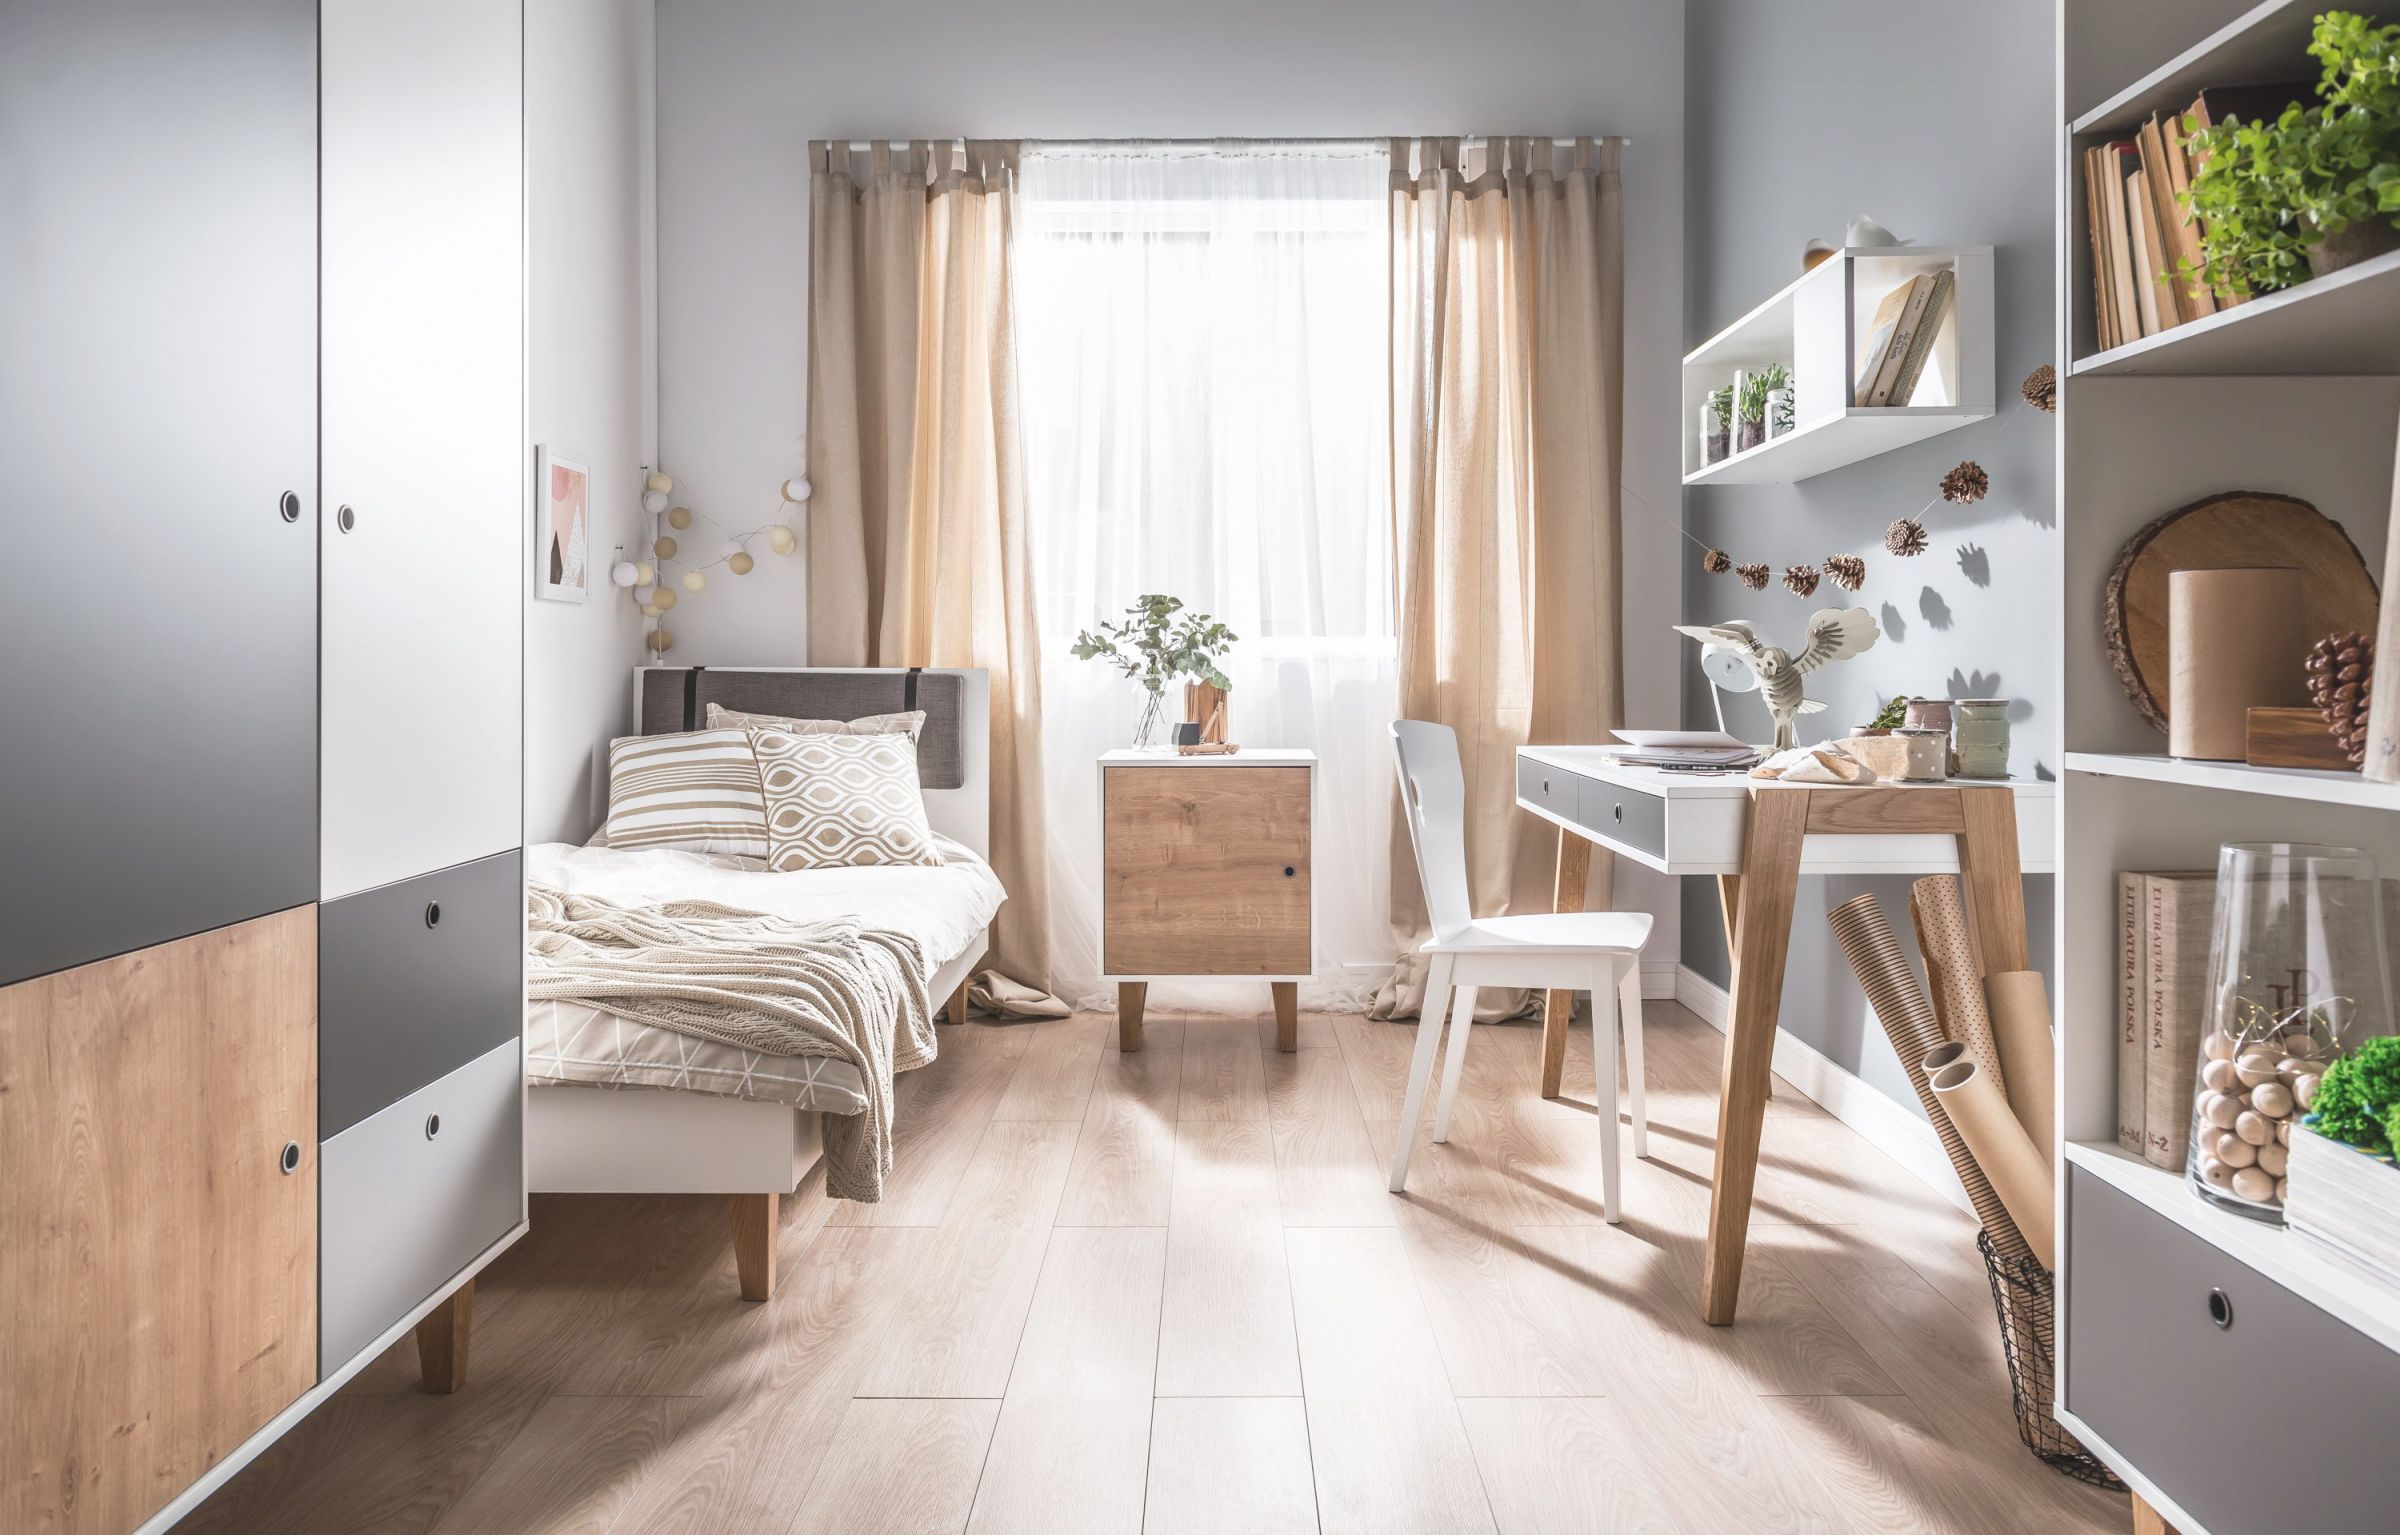 18 Small Bedroom Ideas To Fall In Love With – Small Bedroom with Small Bedroom Decoration Ideas